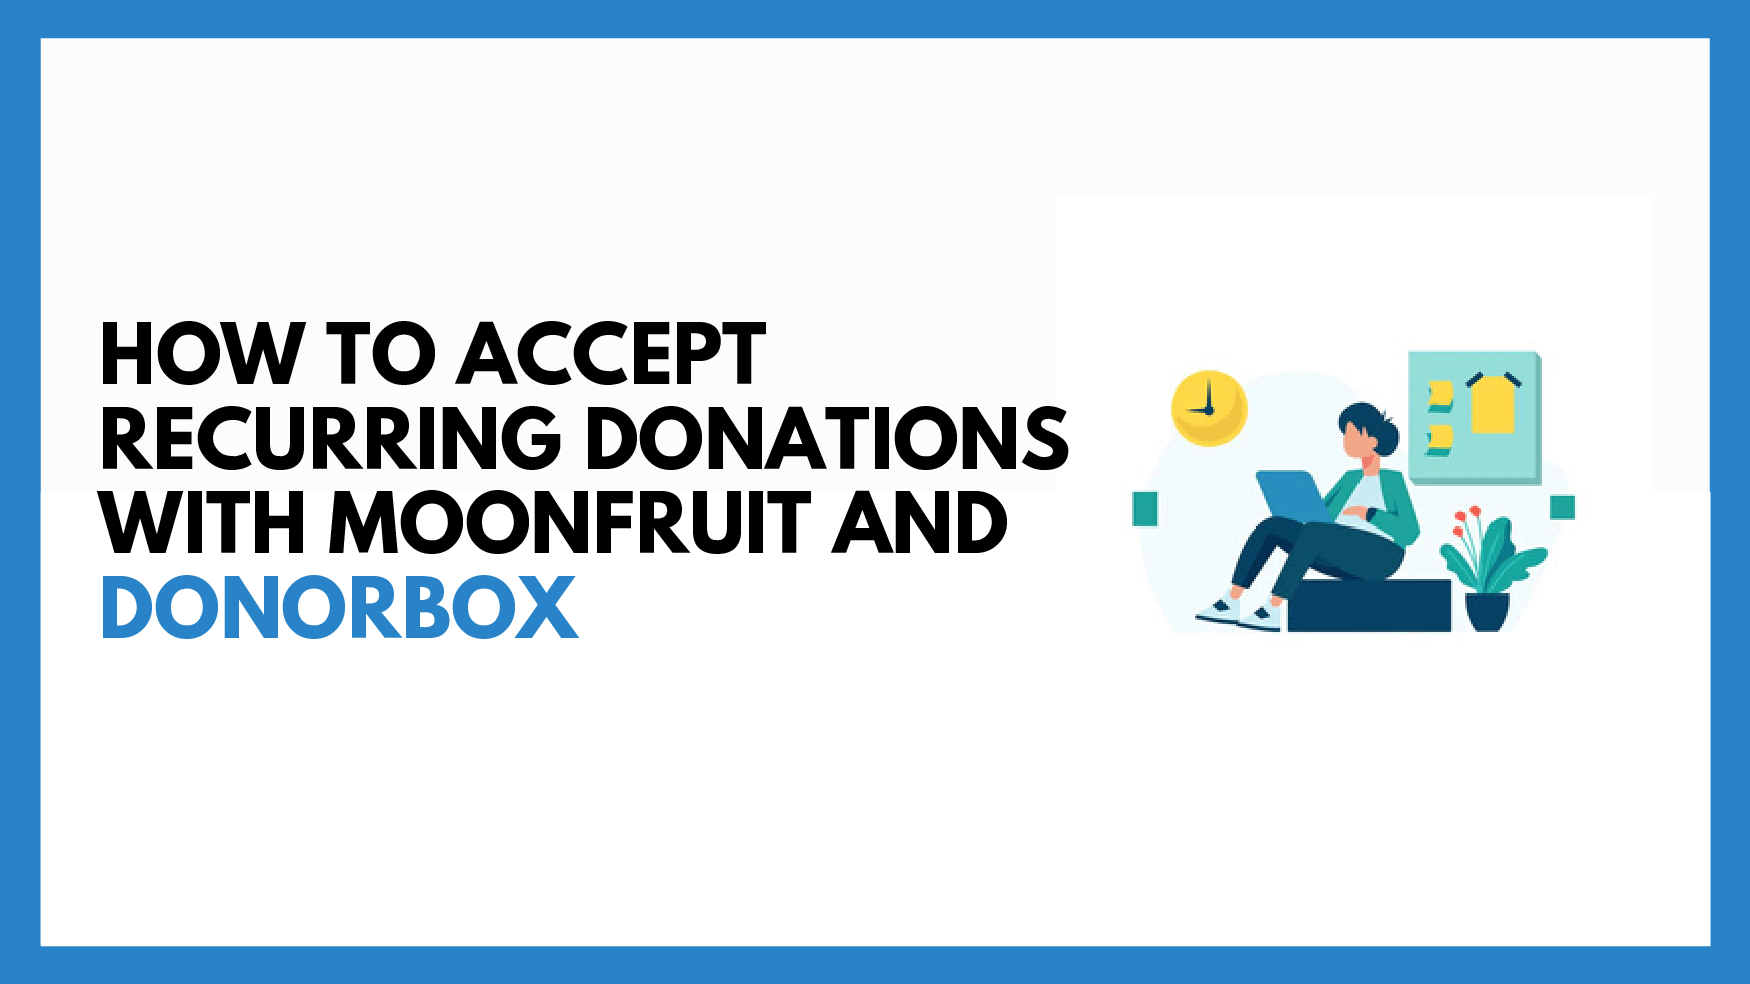 How To Accept Recurring Donations with Moonfruit and Donorbox